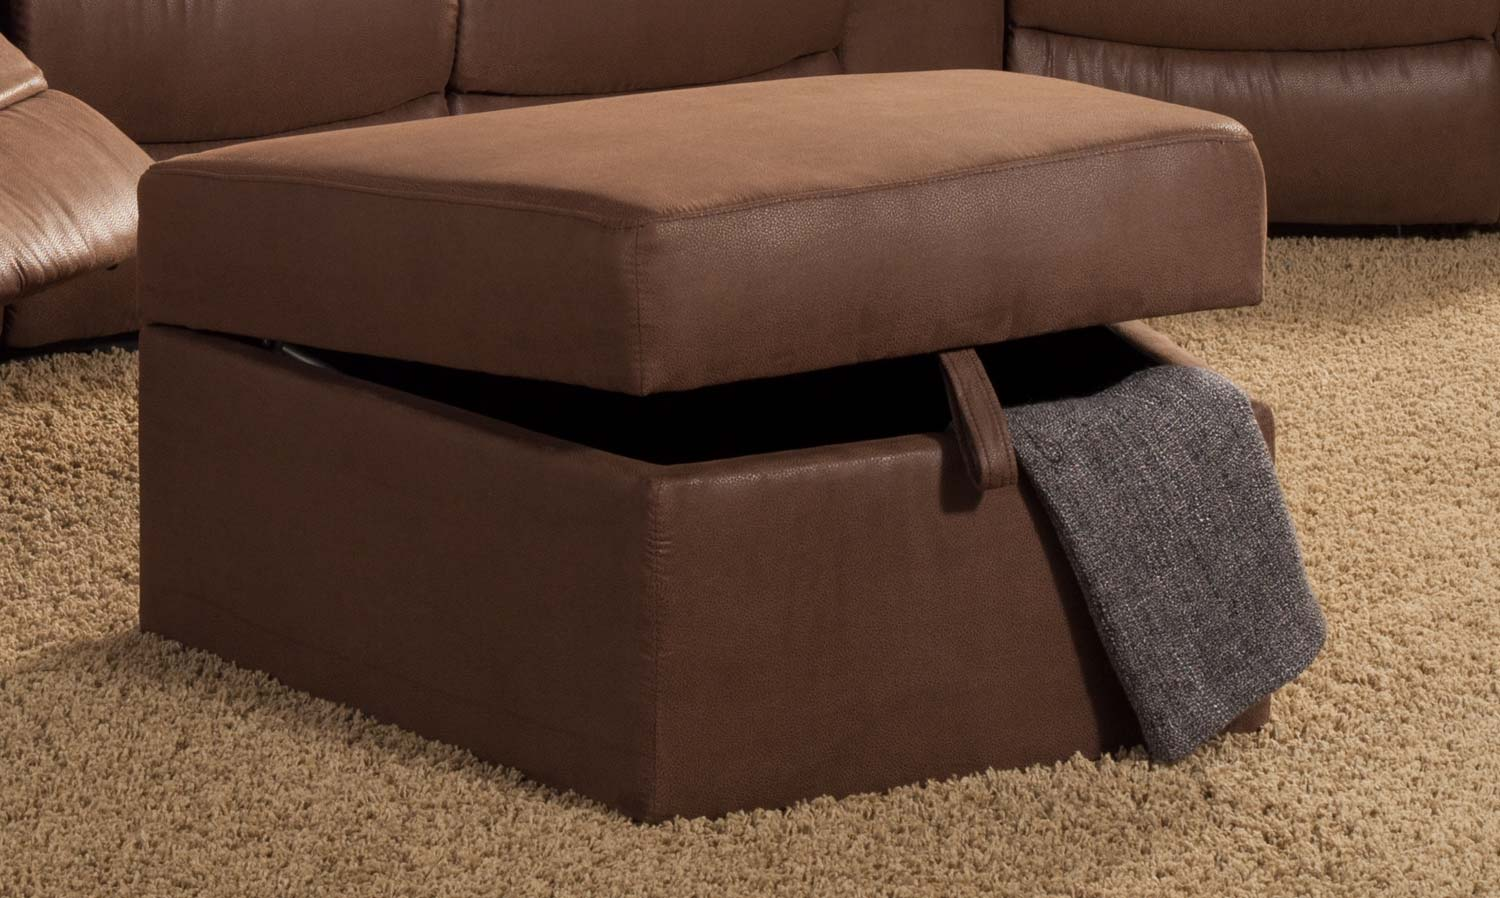 Homelegance Tucker Storage Ottoman - Brown? - Bomber Jacket Microfiber